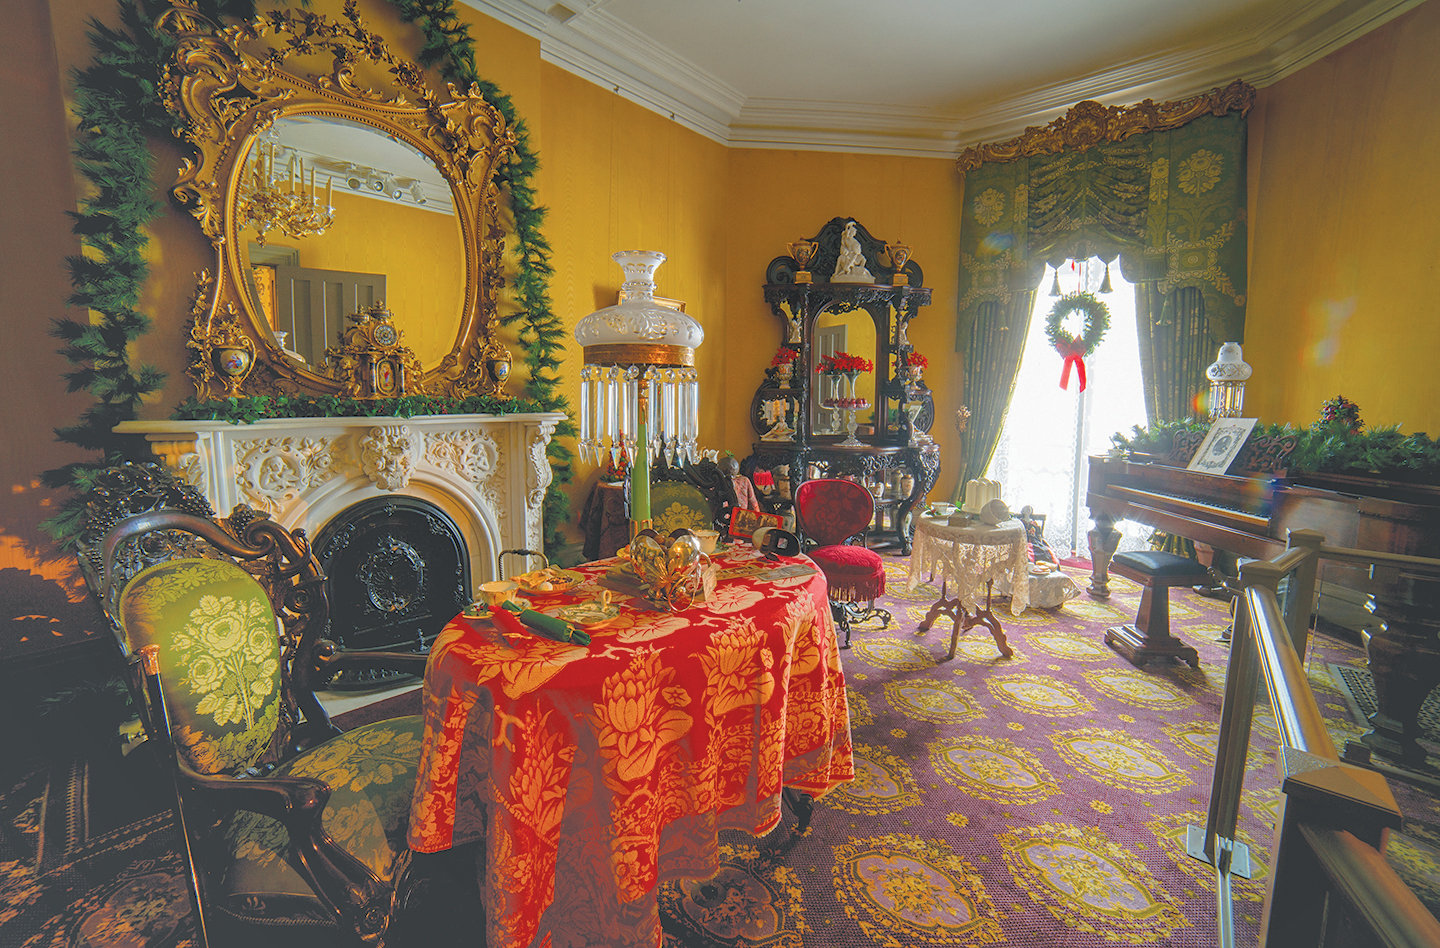 Victorian Yuletide — A New York State Christmas is this year's theme for MWPAI's annual event. Exhibit opens Nov. 23.